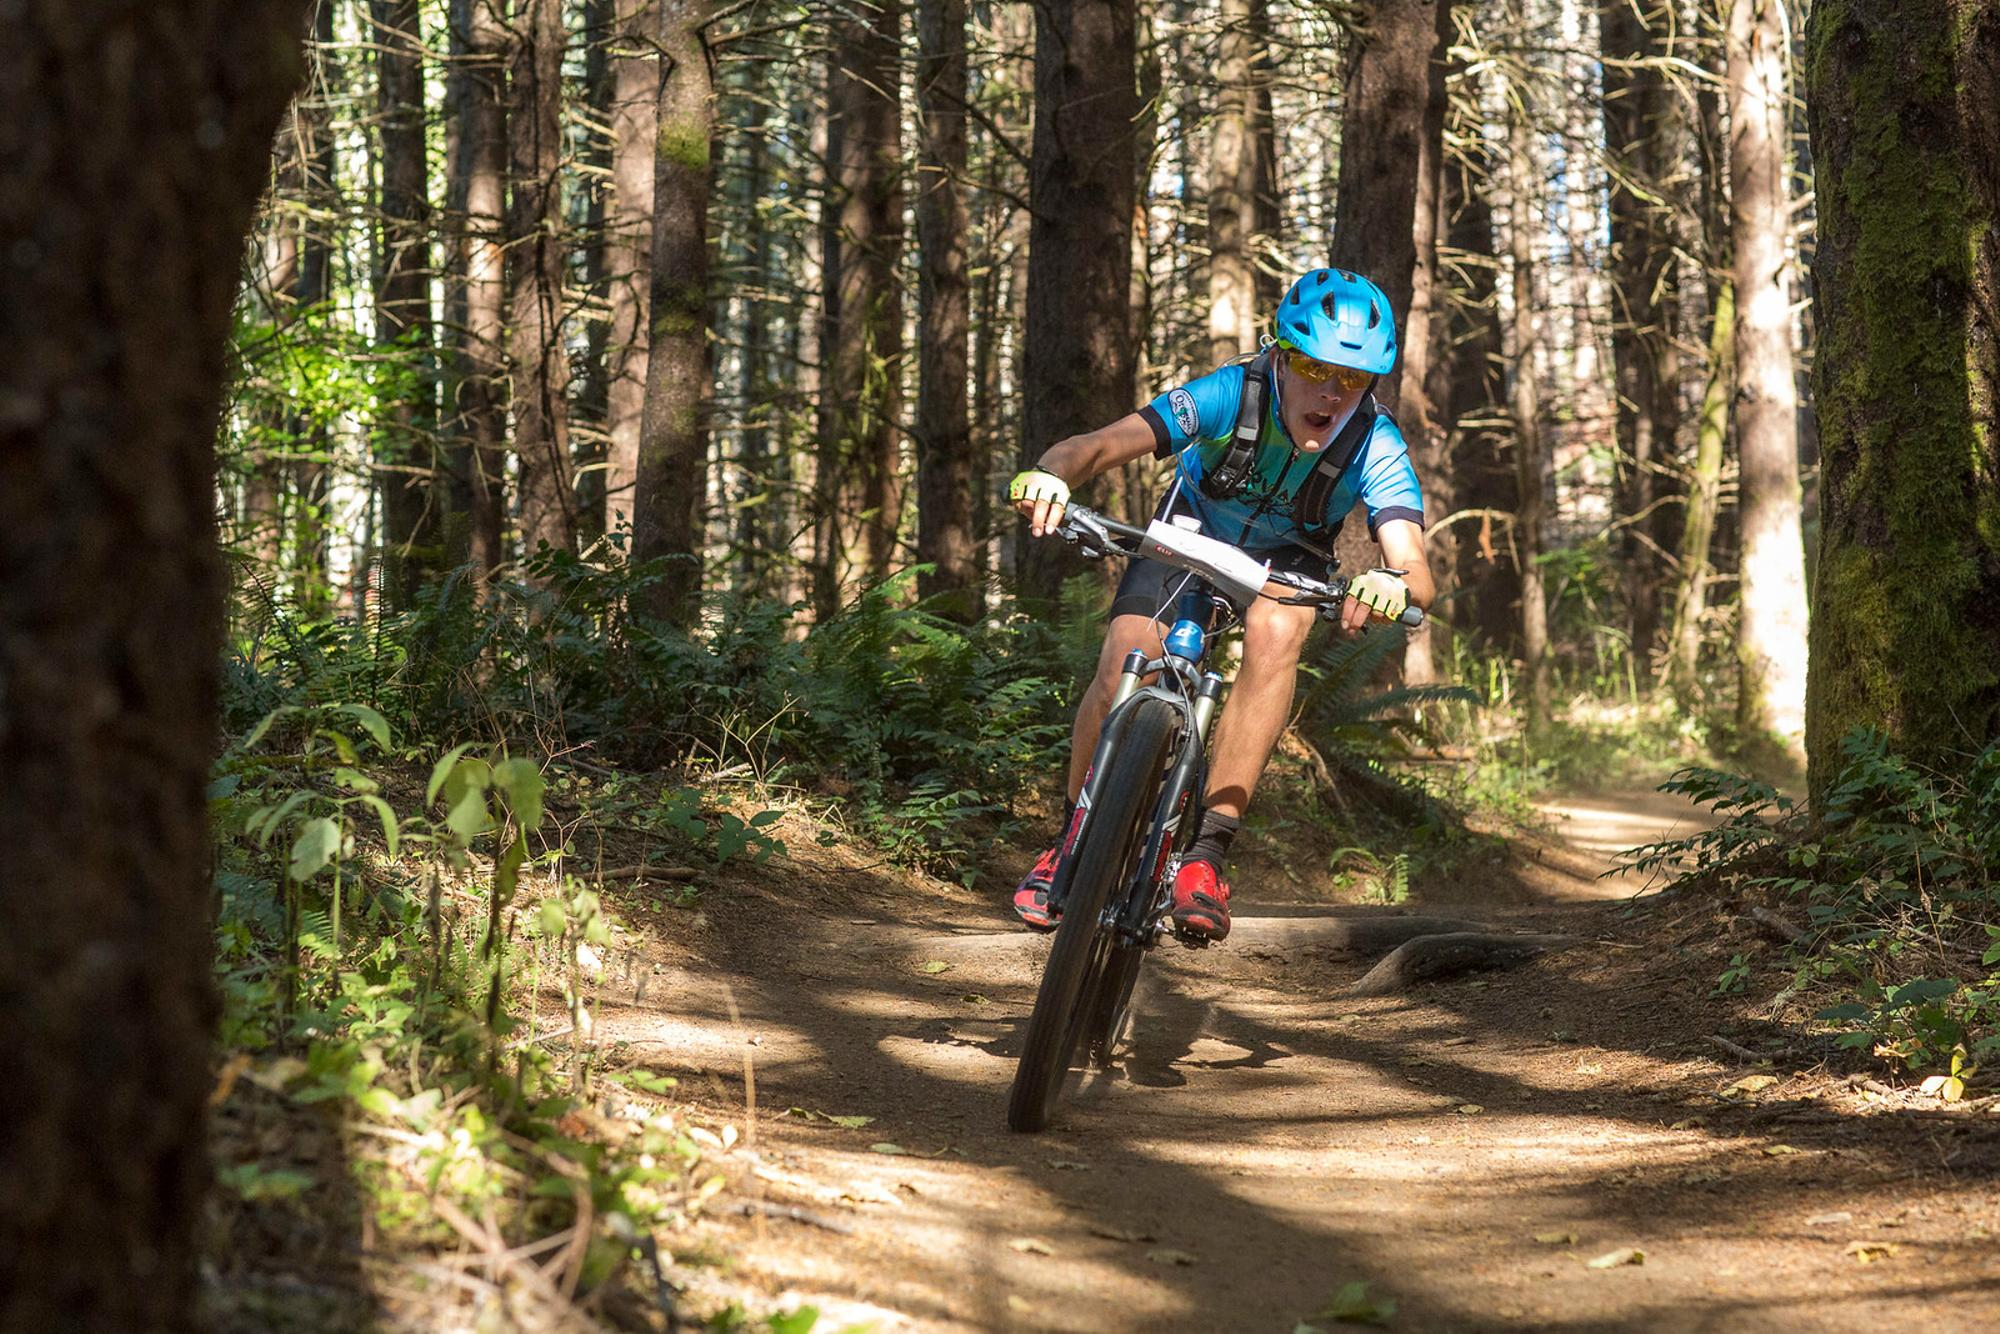 NICA: In league With the Next Generation; an Interview with Oregon's Heather Wolfgang